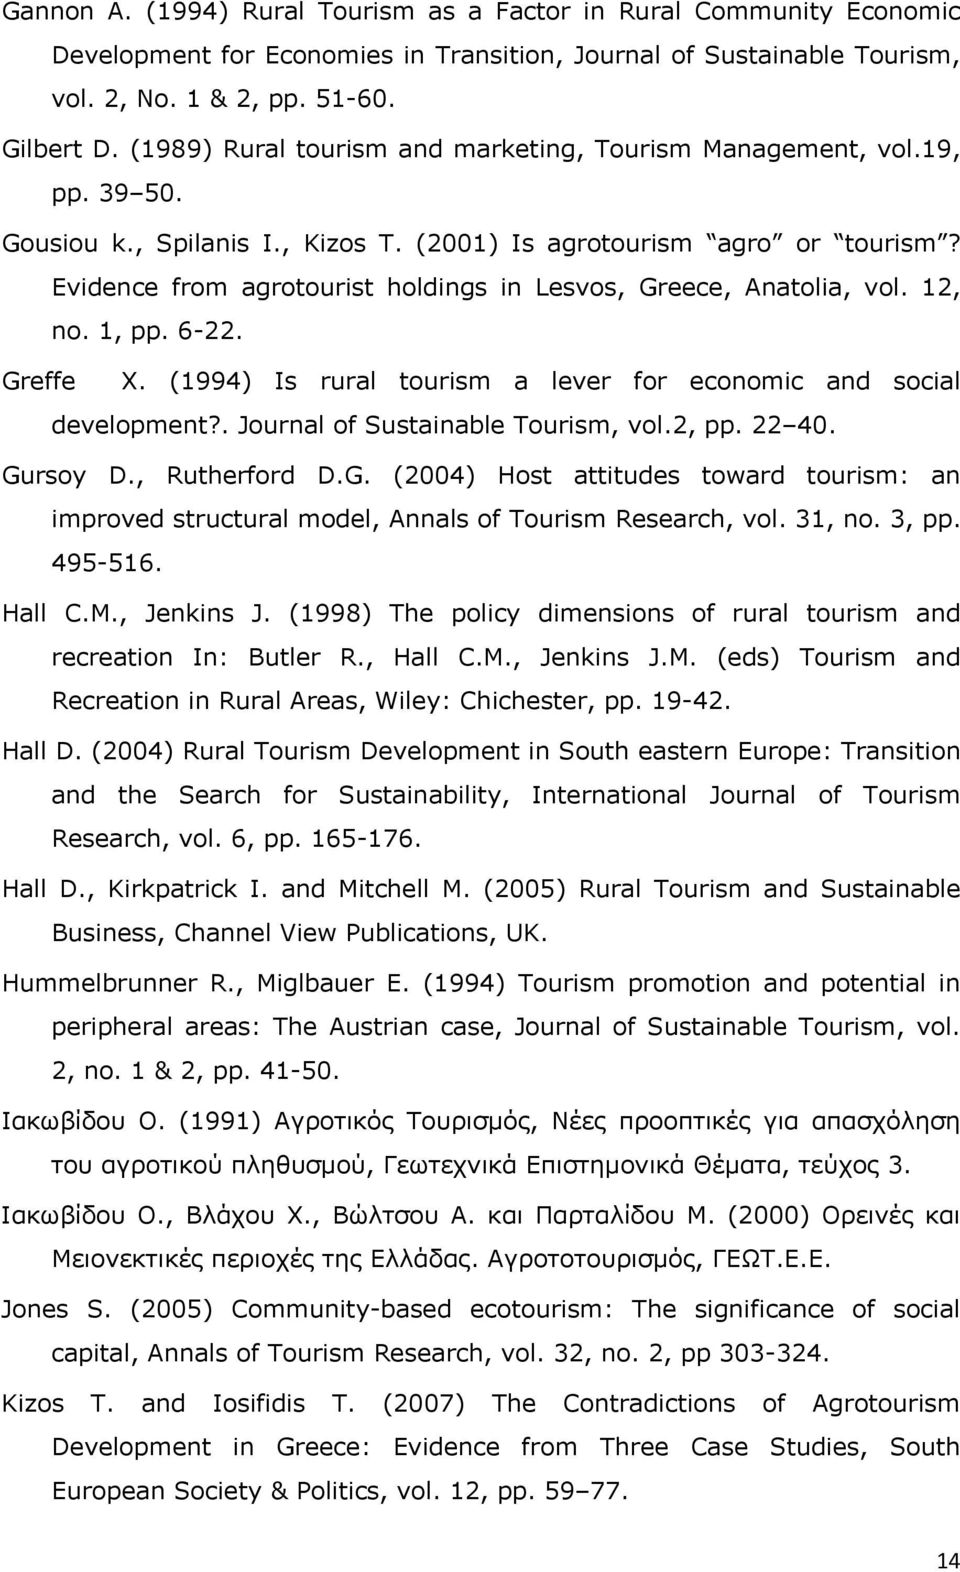 Evidence from agrotourist holdings in Lesvos, Greece, Anatolia, vol. 12, no. 1, pp. 6-22. Greffe X. (1994) Is rural tourism a lever for economic and social development?